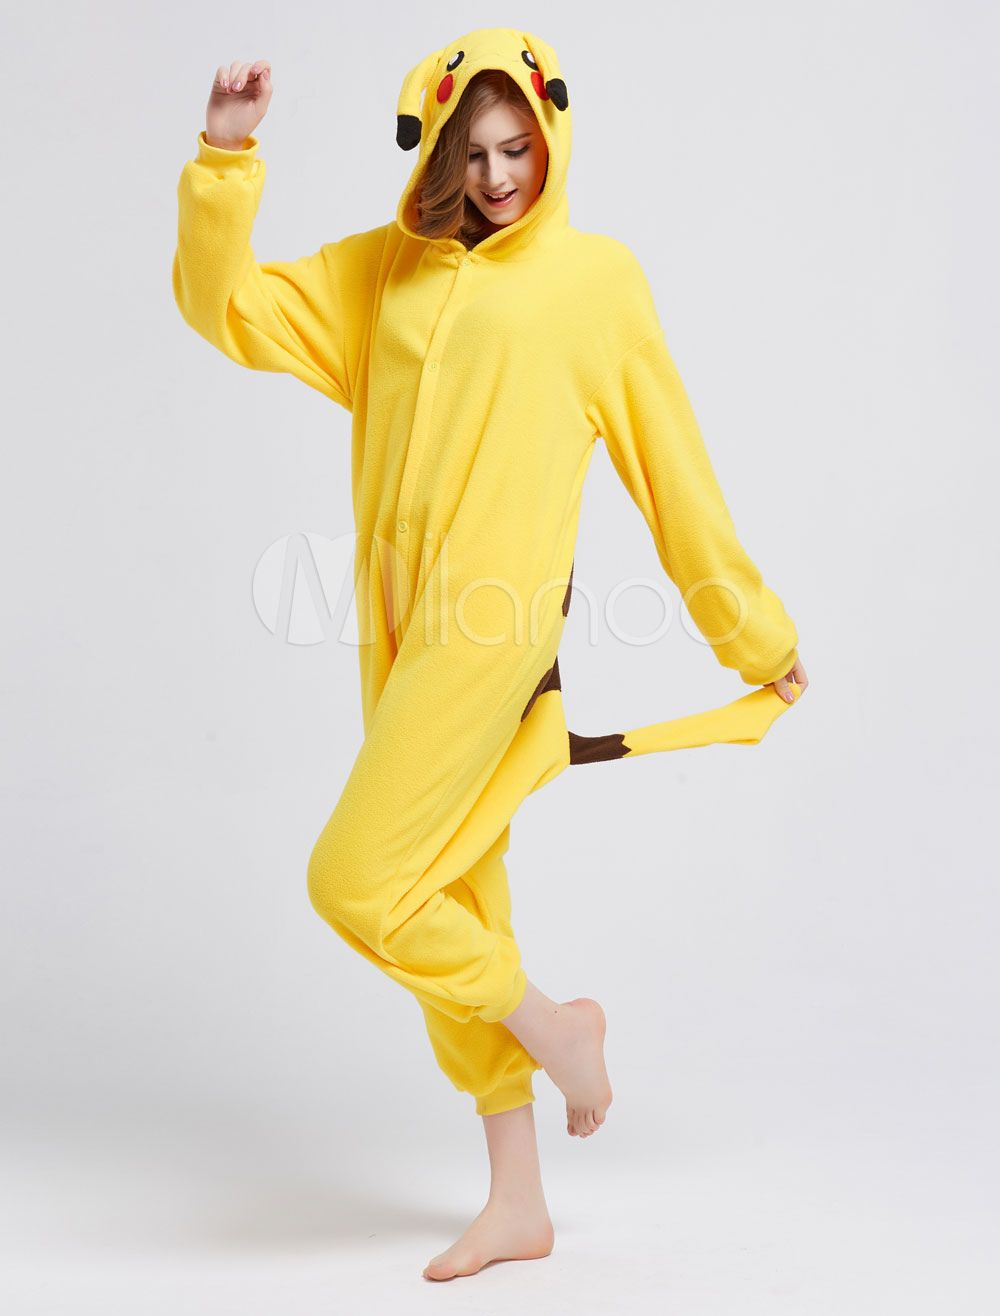 357974a57296 Kigurumi Pajamas Pikachu Onesie Yellow Pokemon Fleece Flannel ...